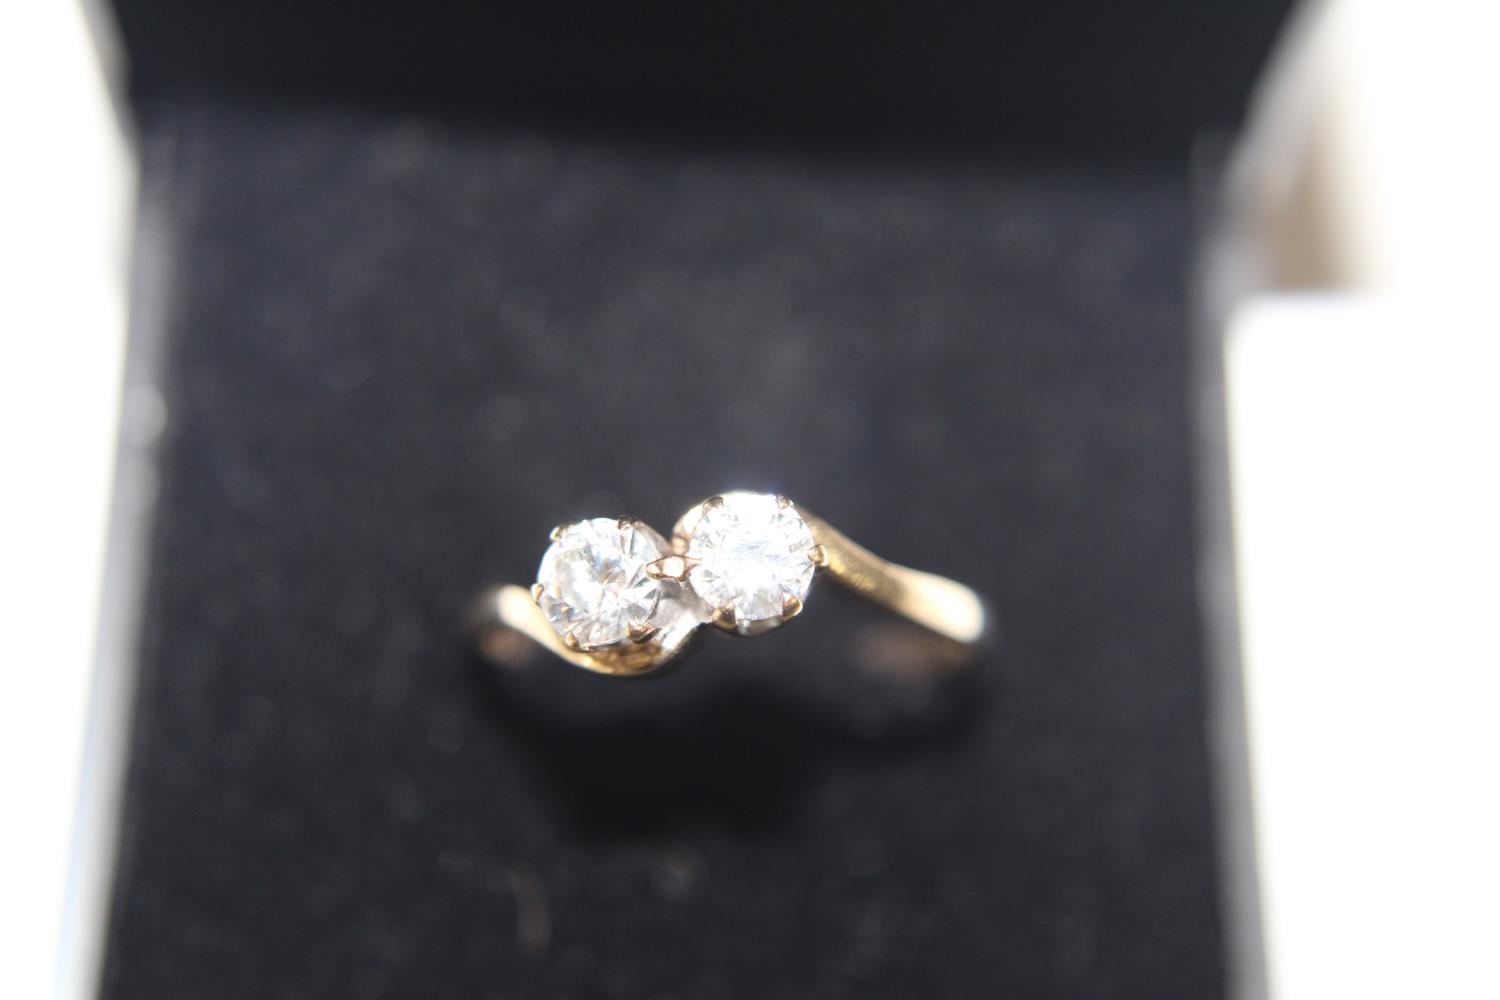 A 9ct gold twin stone ring size M 1/2